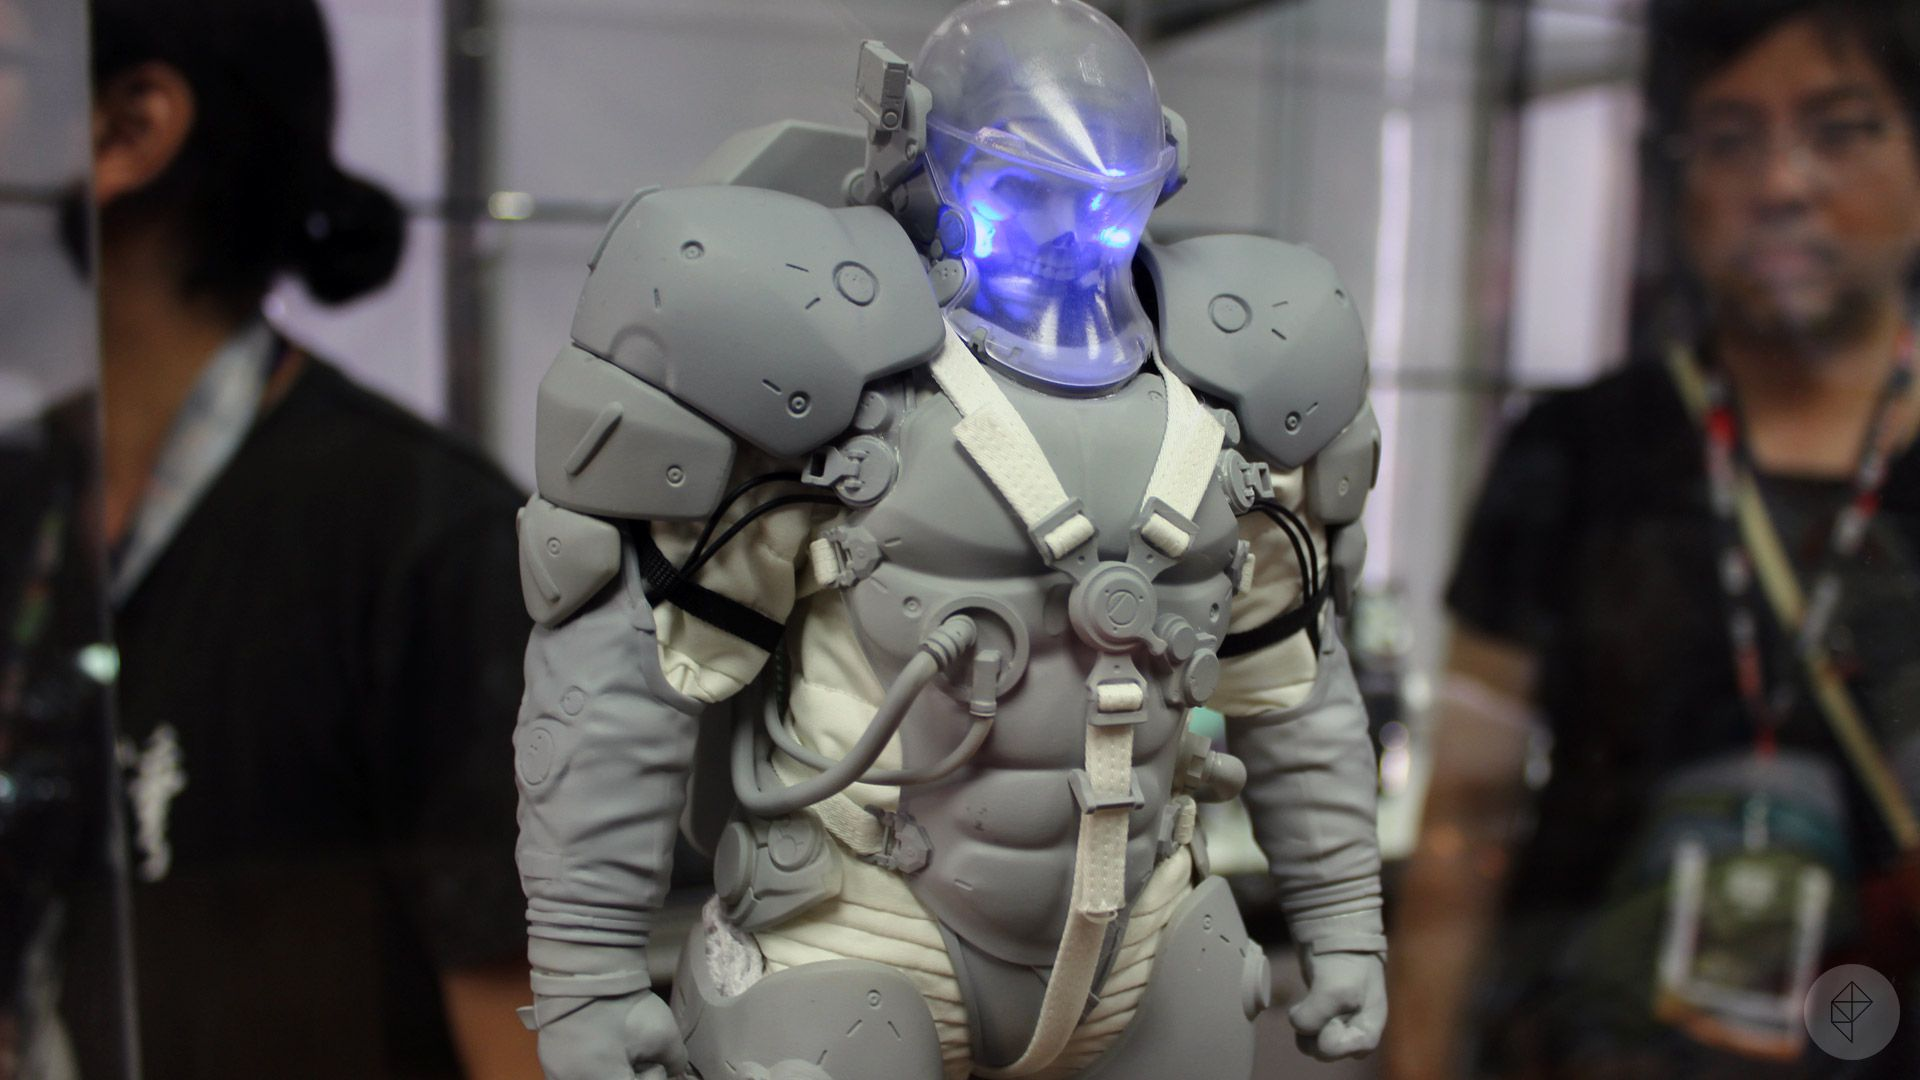 Kojima Productions Mascot Ludens Getting Its Own Action